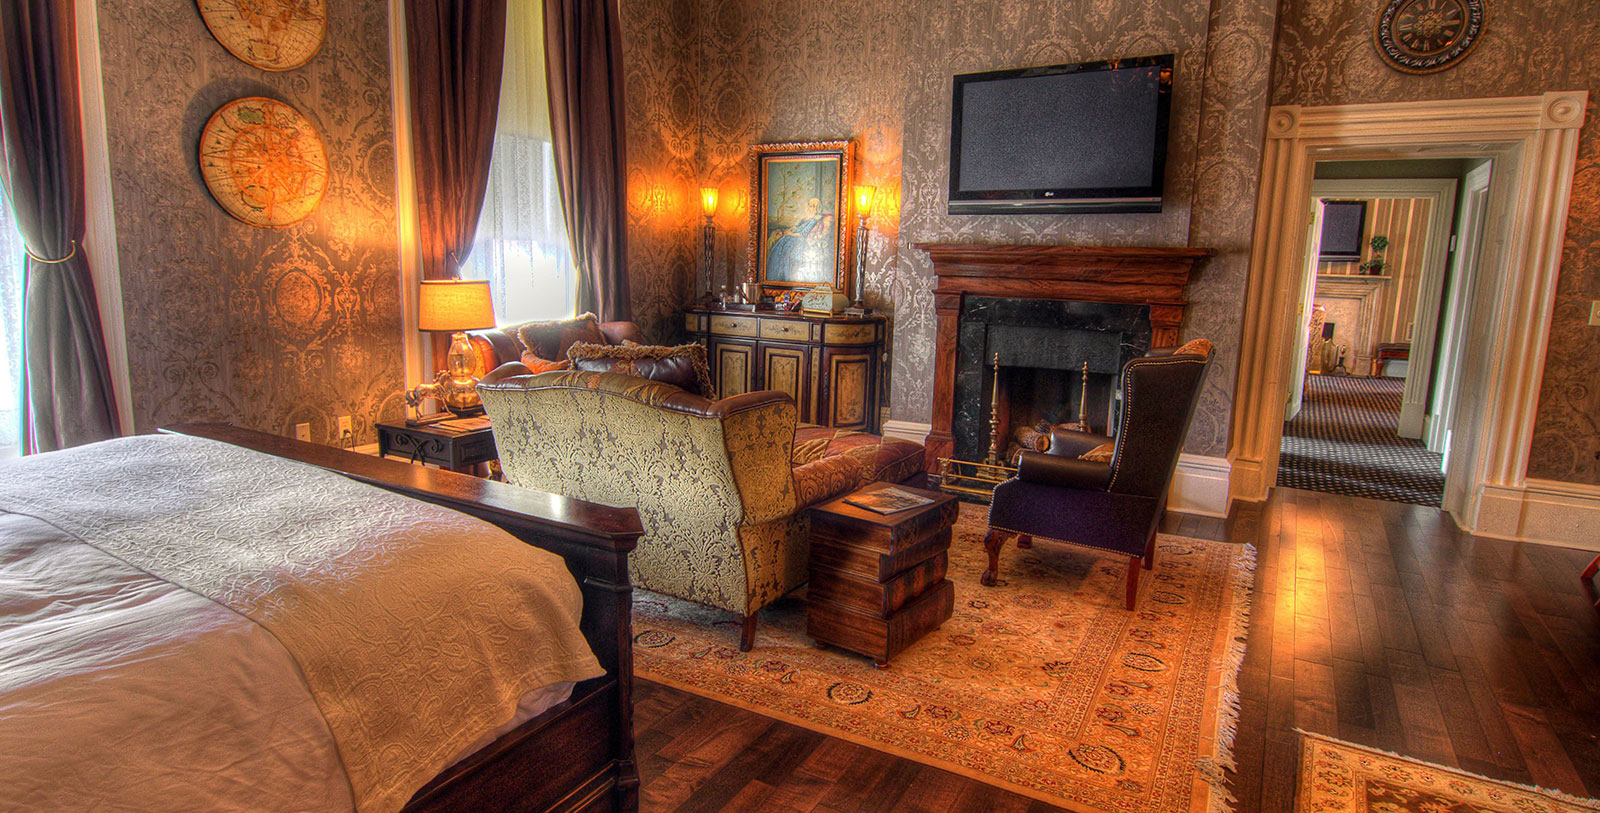 Image of Guestroom at The Martha Washington Hotel & Spa, 1832, Member of Historic Hotels of America, in Abingdon, Virginia, Accommodations